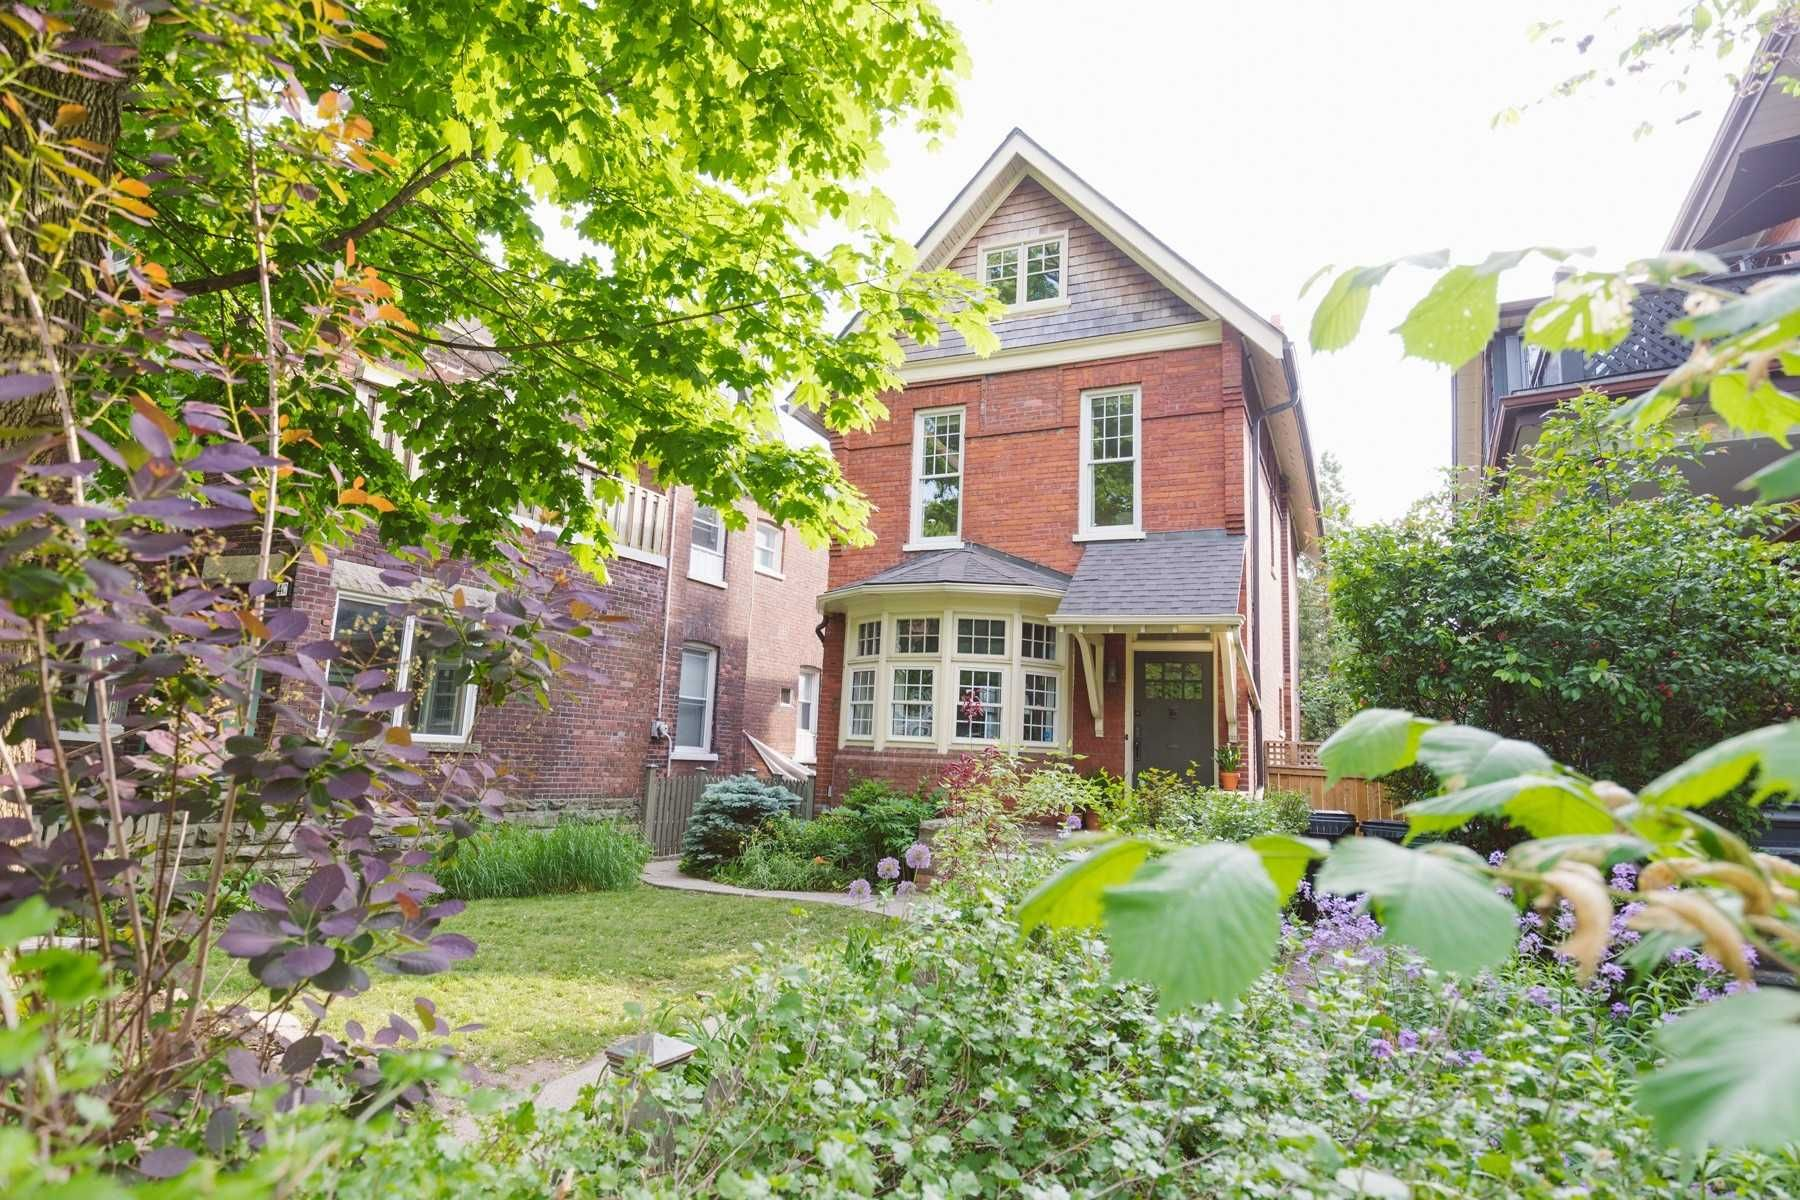 Main Photo: 42 Wilson Park Road in Toronto: South Parkdale House (2 1/2 Storey) for sale (Toronto W01)  : MLS®# W5272344